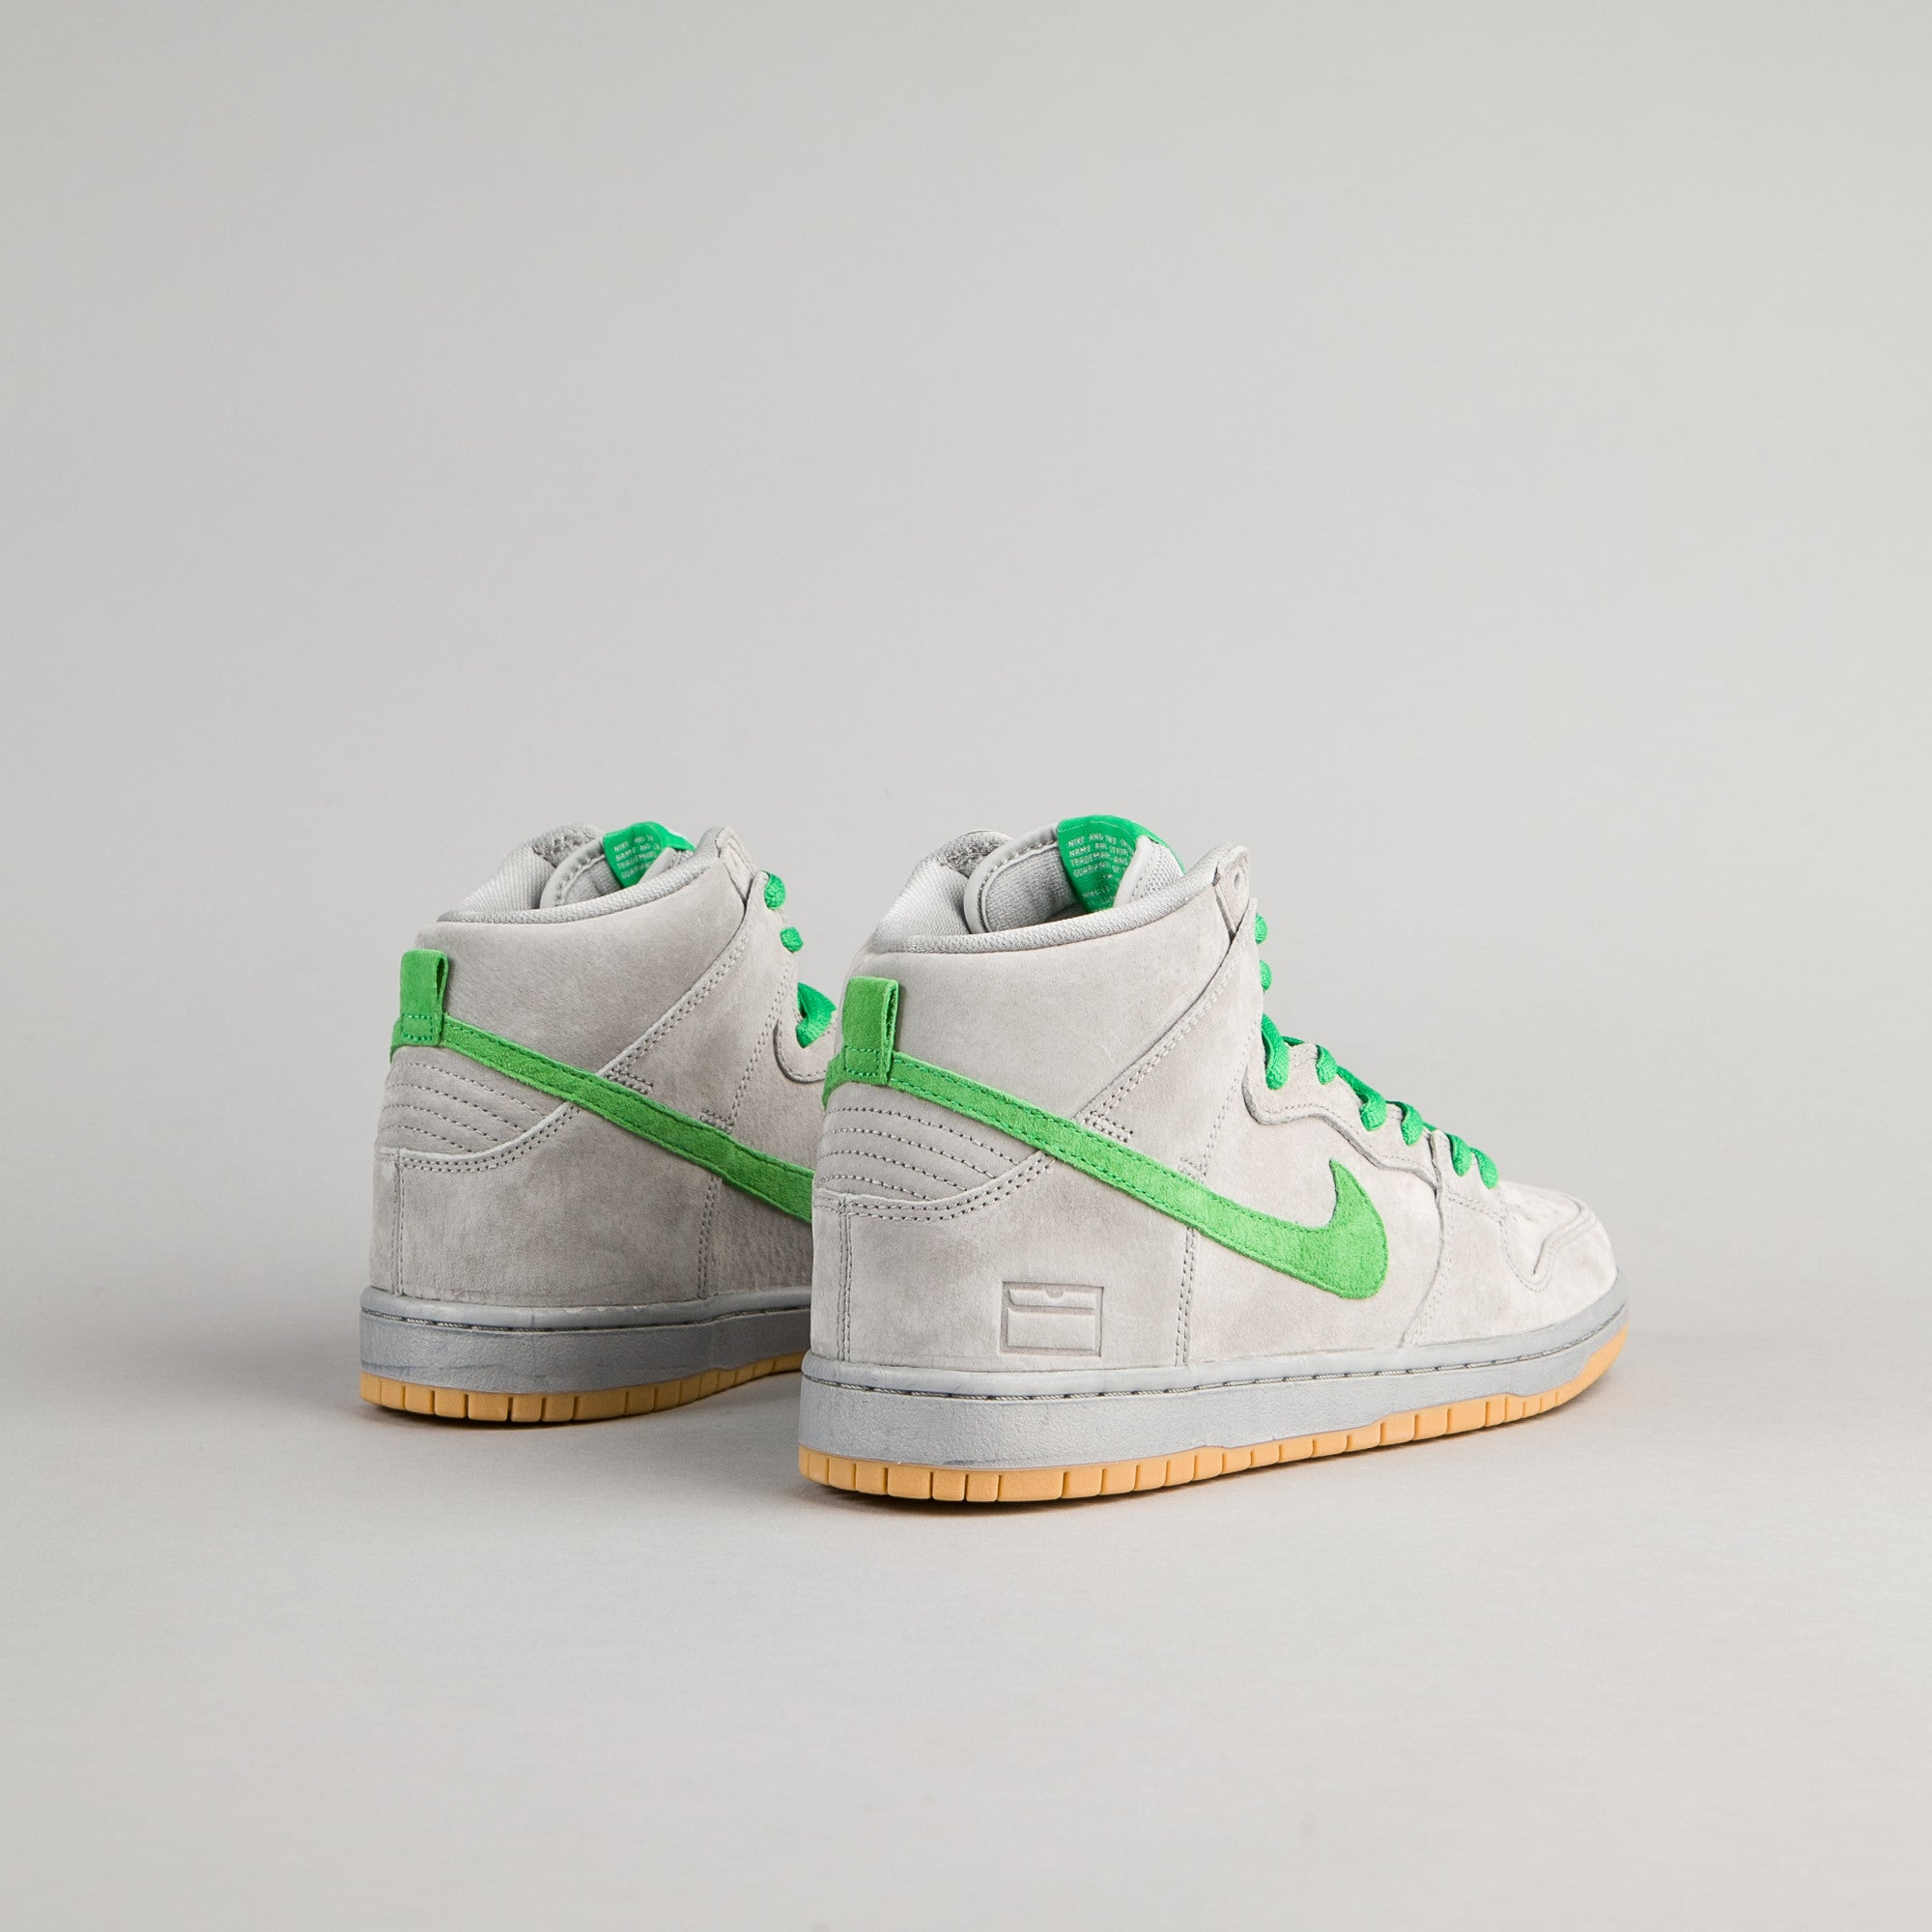 Nike SB Dunk High Premium Shoes - Metallic Silver / Hyper Verde - Gum Yellow